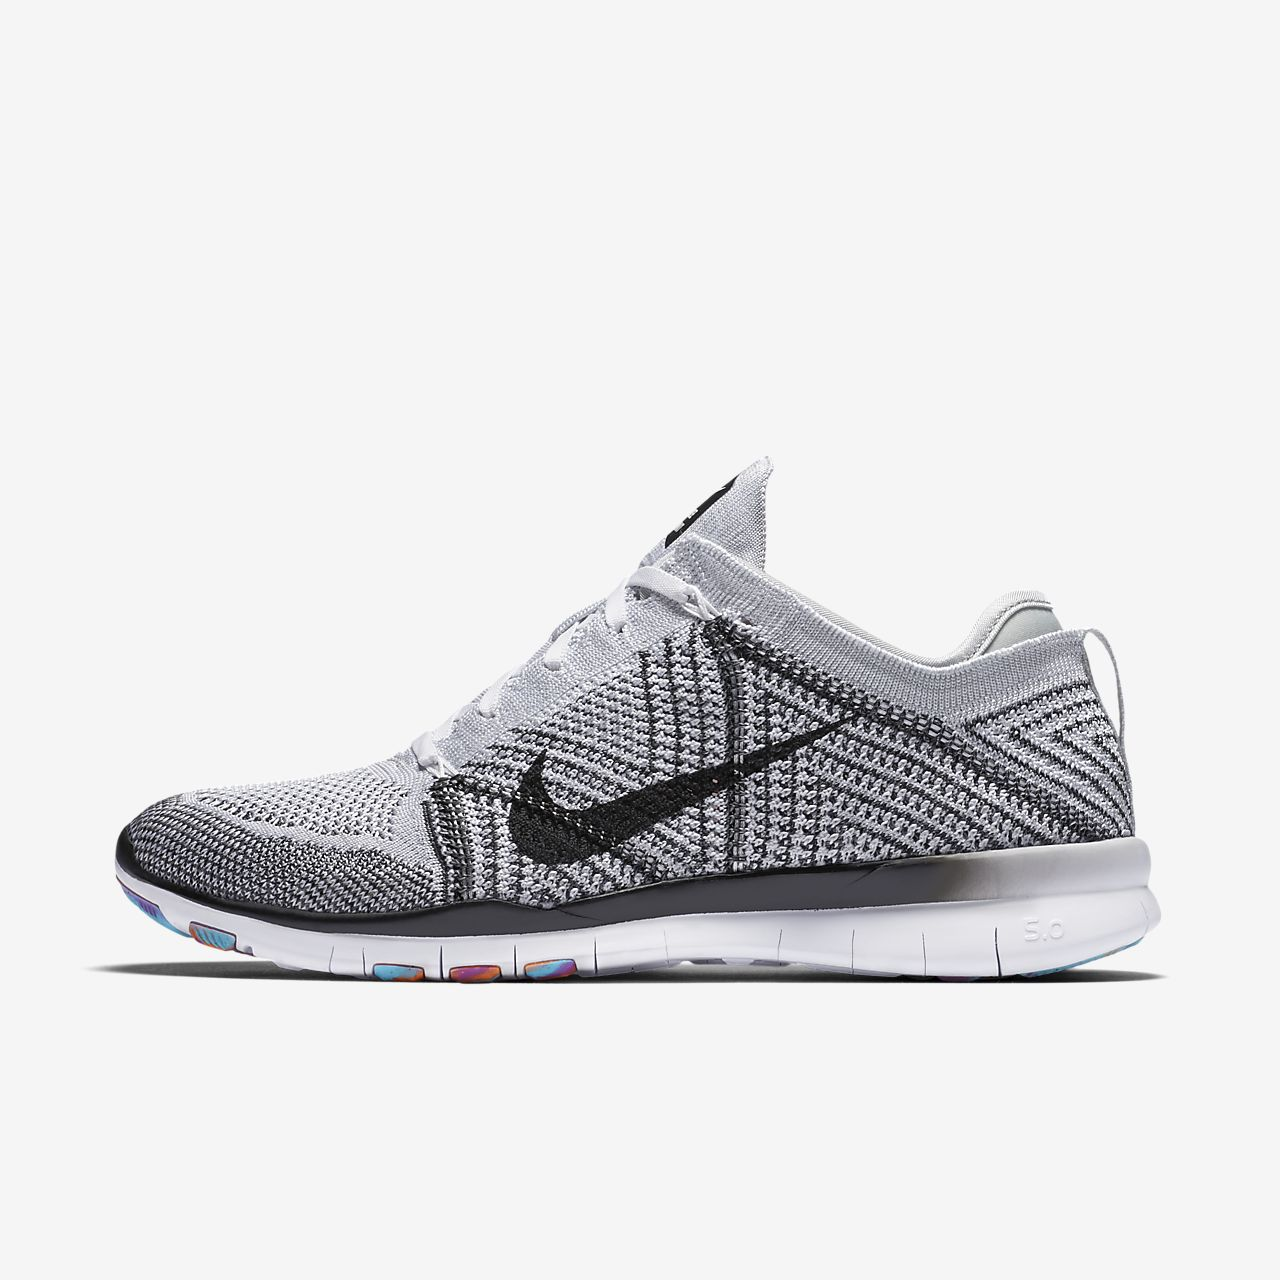 nike free flyknit 5.0 women's black and white blazer